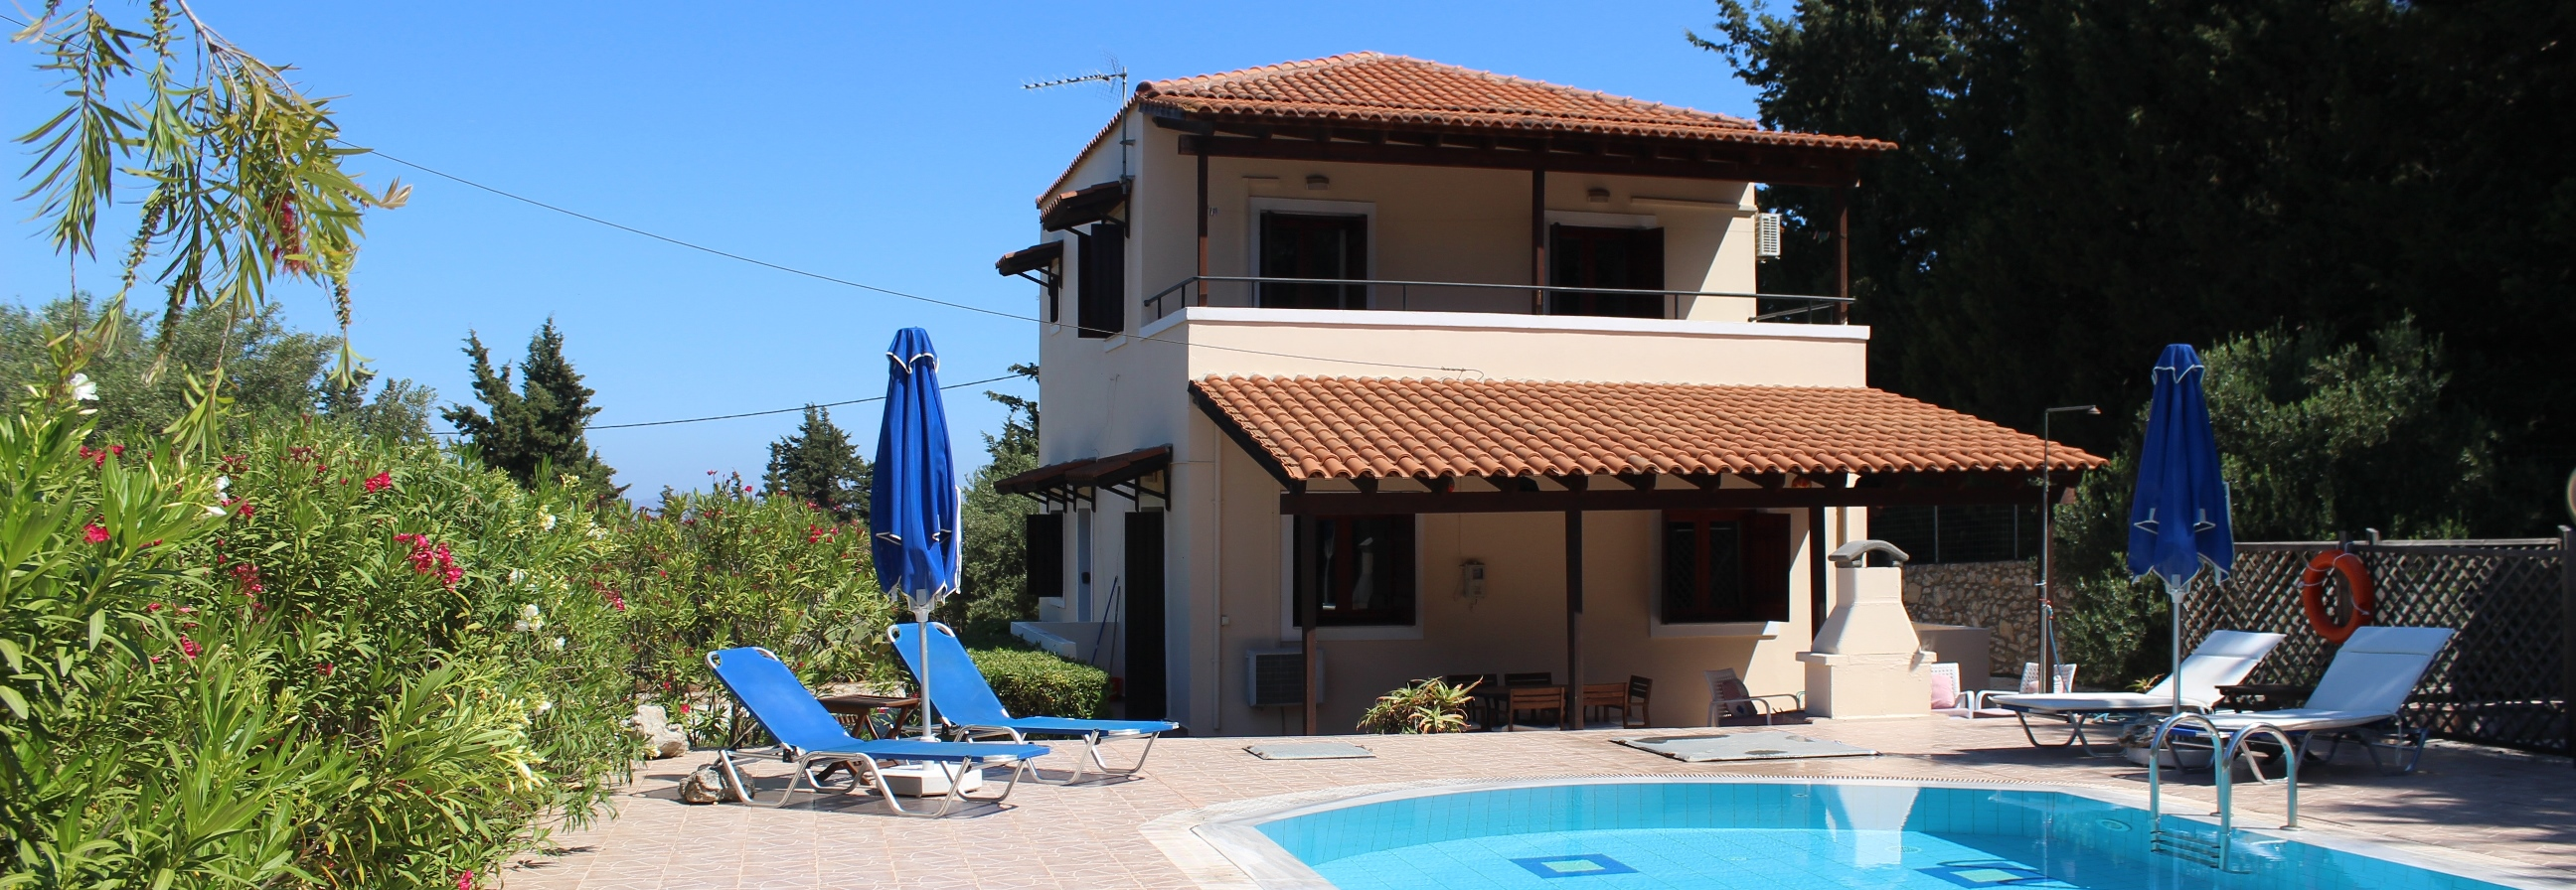 DC-668 3 Bed Villa in Xirosterni €345,000